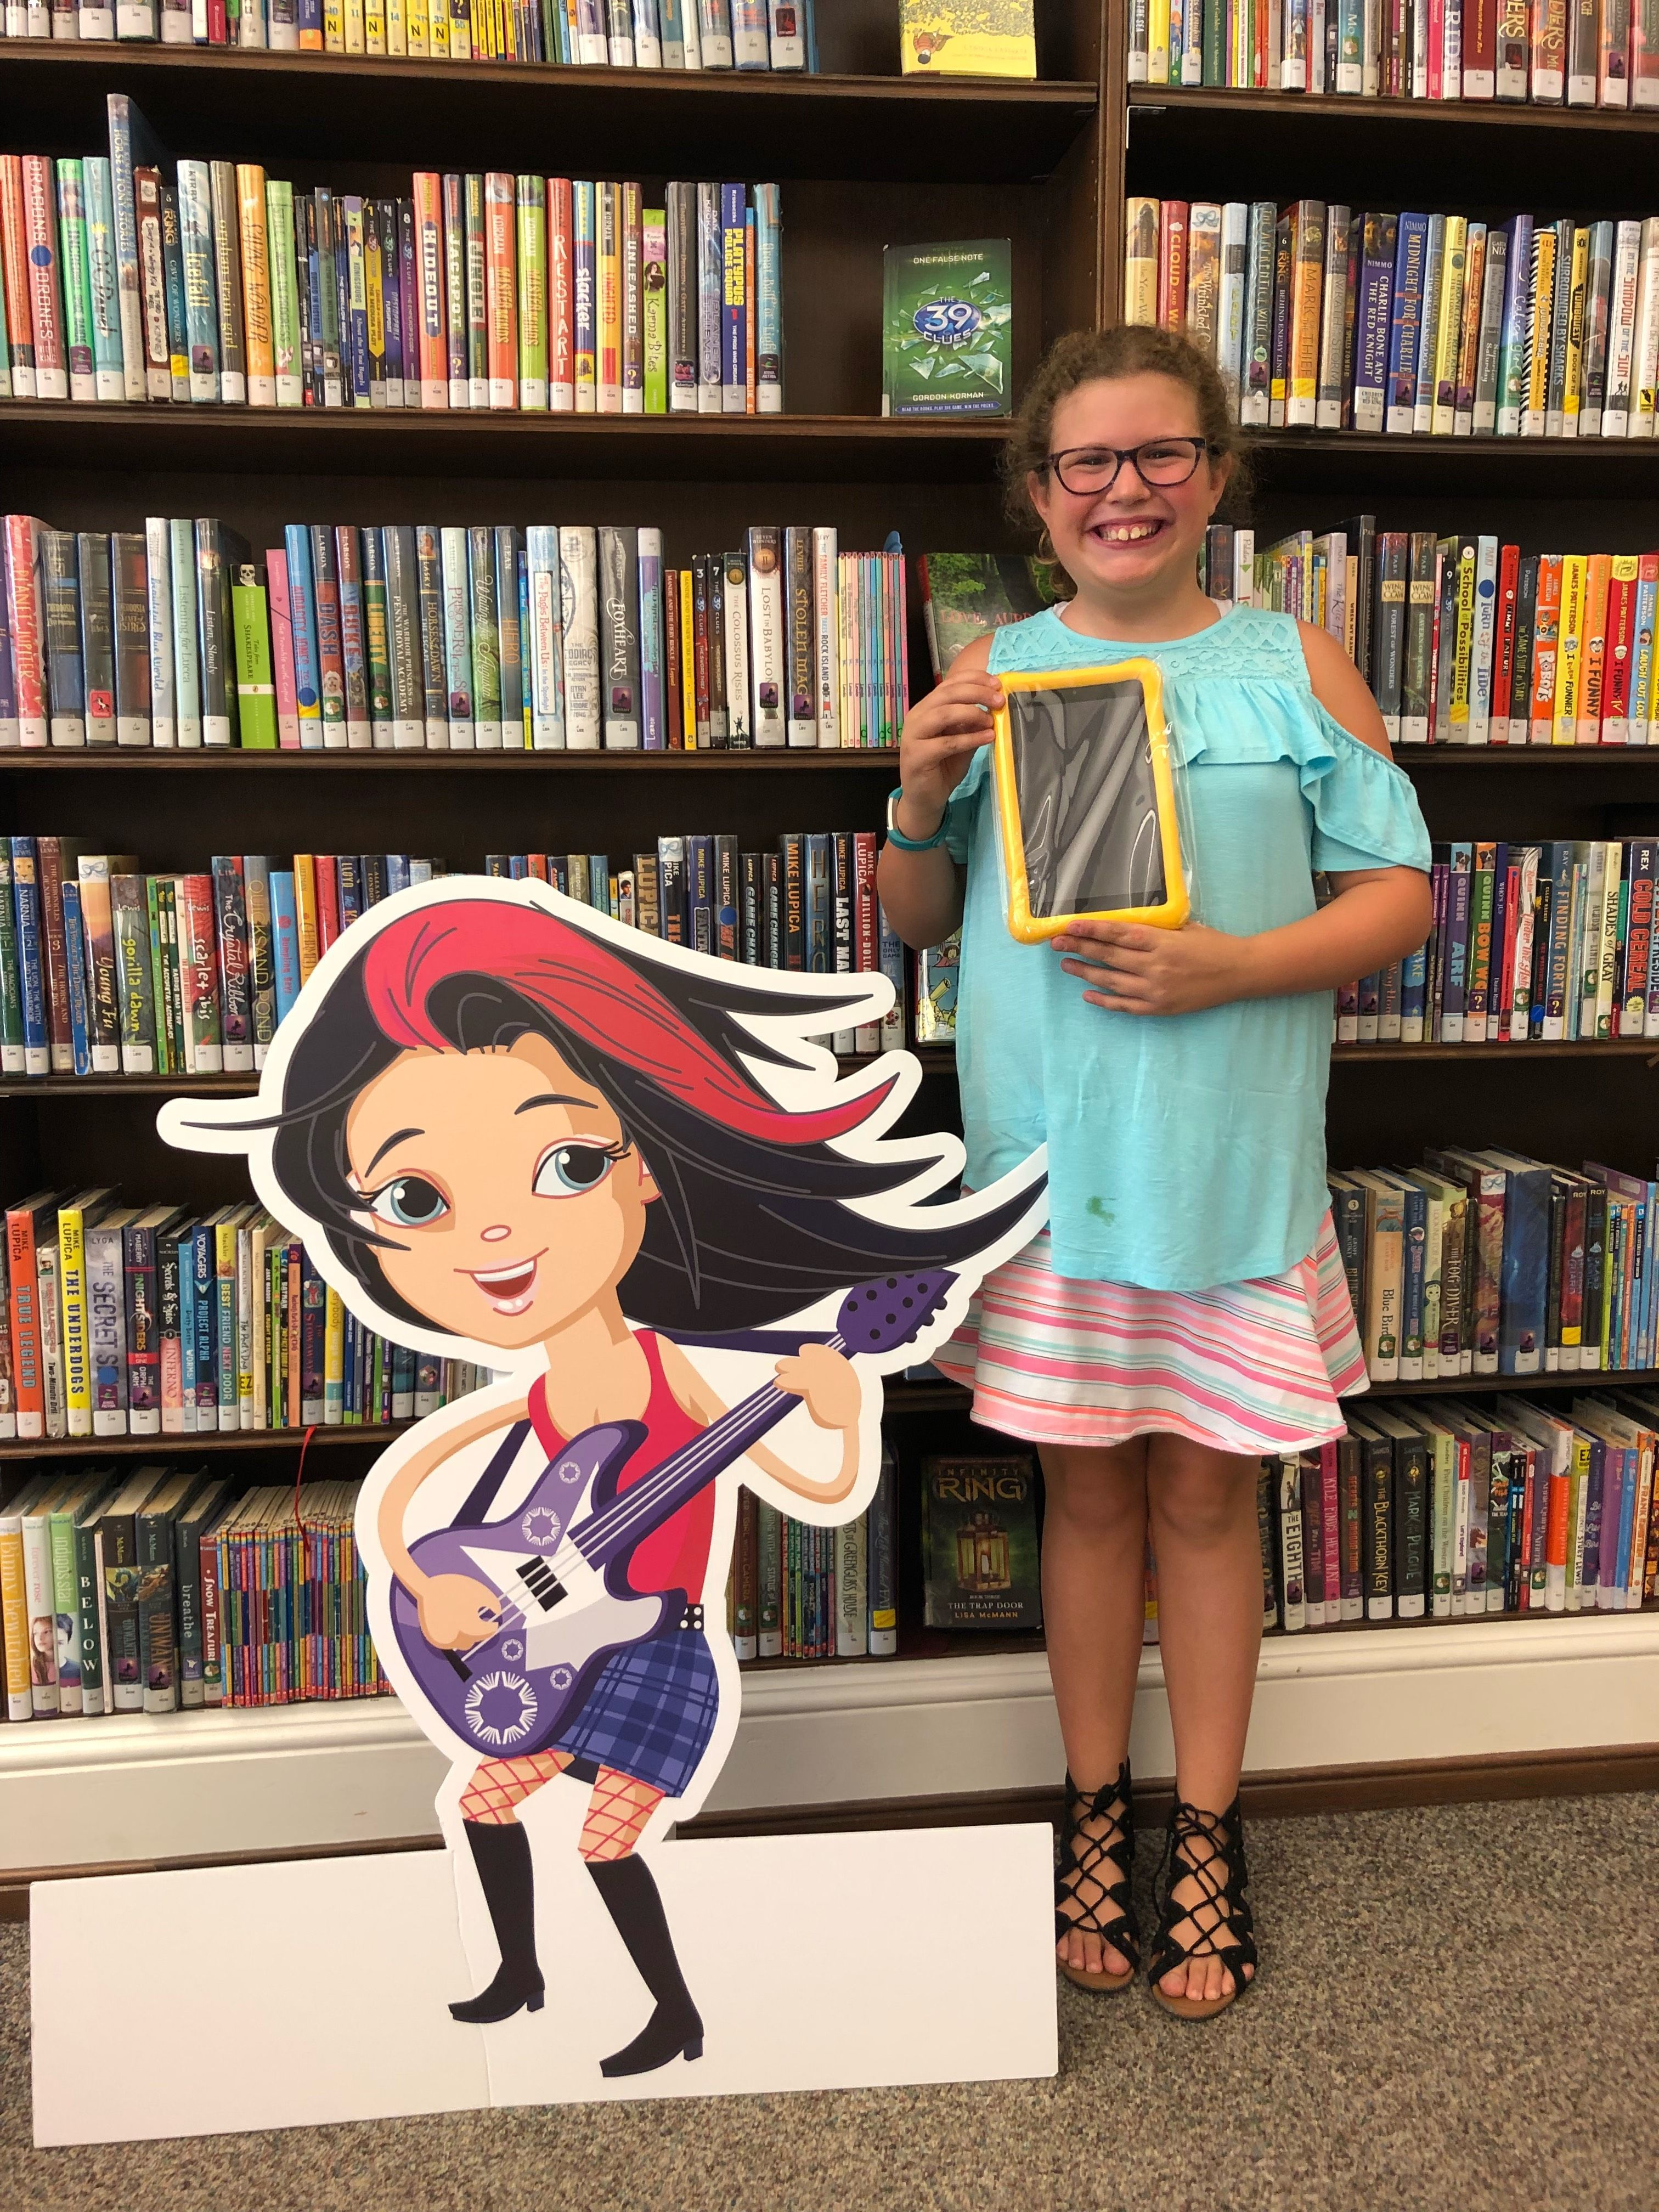 We Have Another Young Summer Reading Club Kindle Winner This Time From The Johnson Memorial Library Open4discove Reading Club Dauphin County County Library